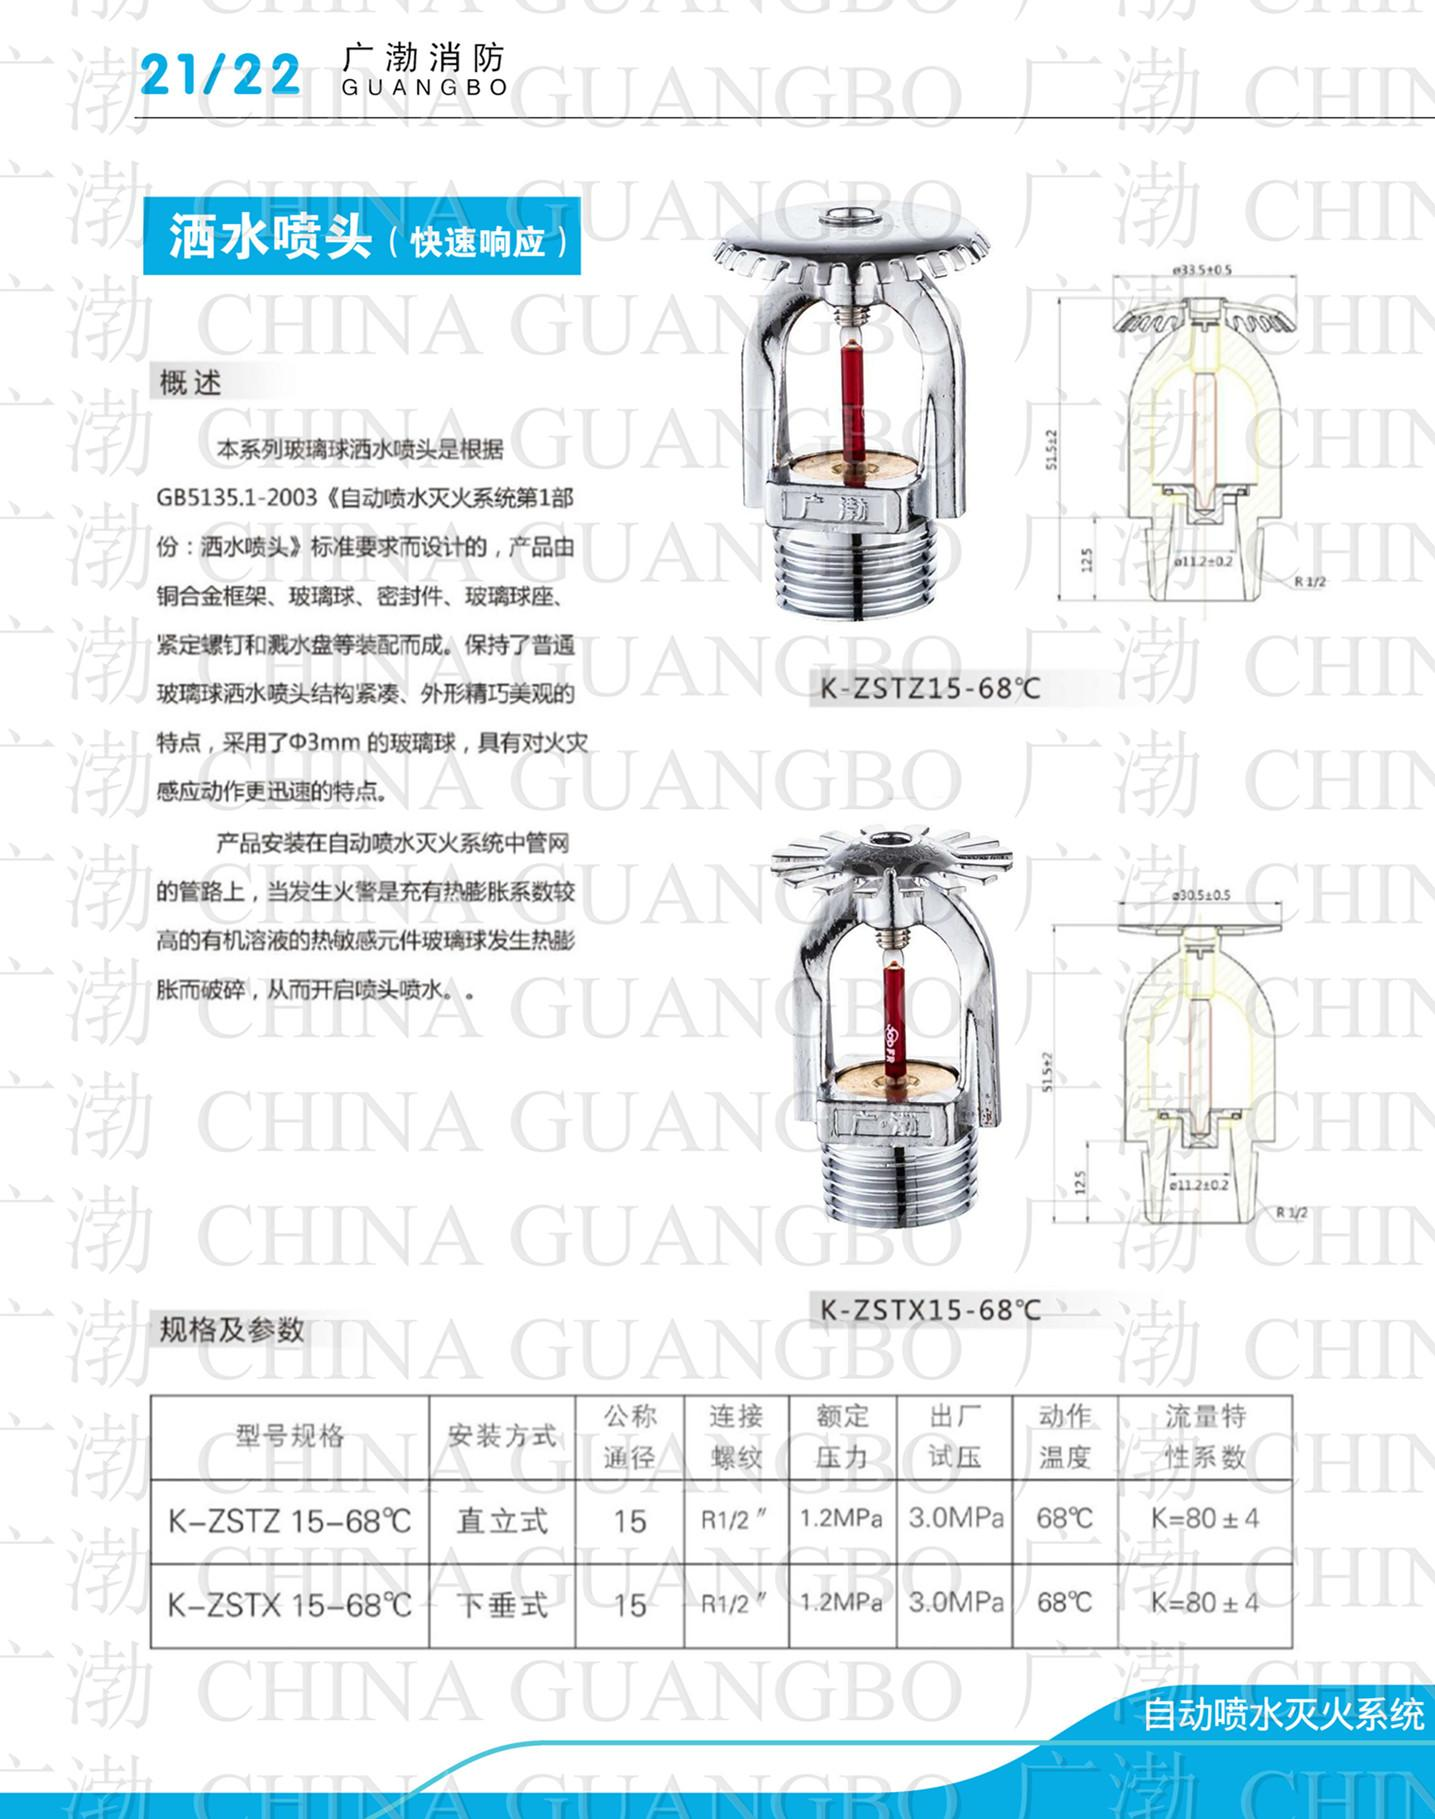 Fire Sprinkler Pendent Upright Sidewall Concealed Type Fujian Guangbo Fighting 4